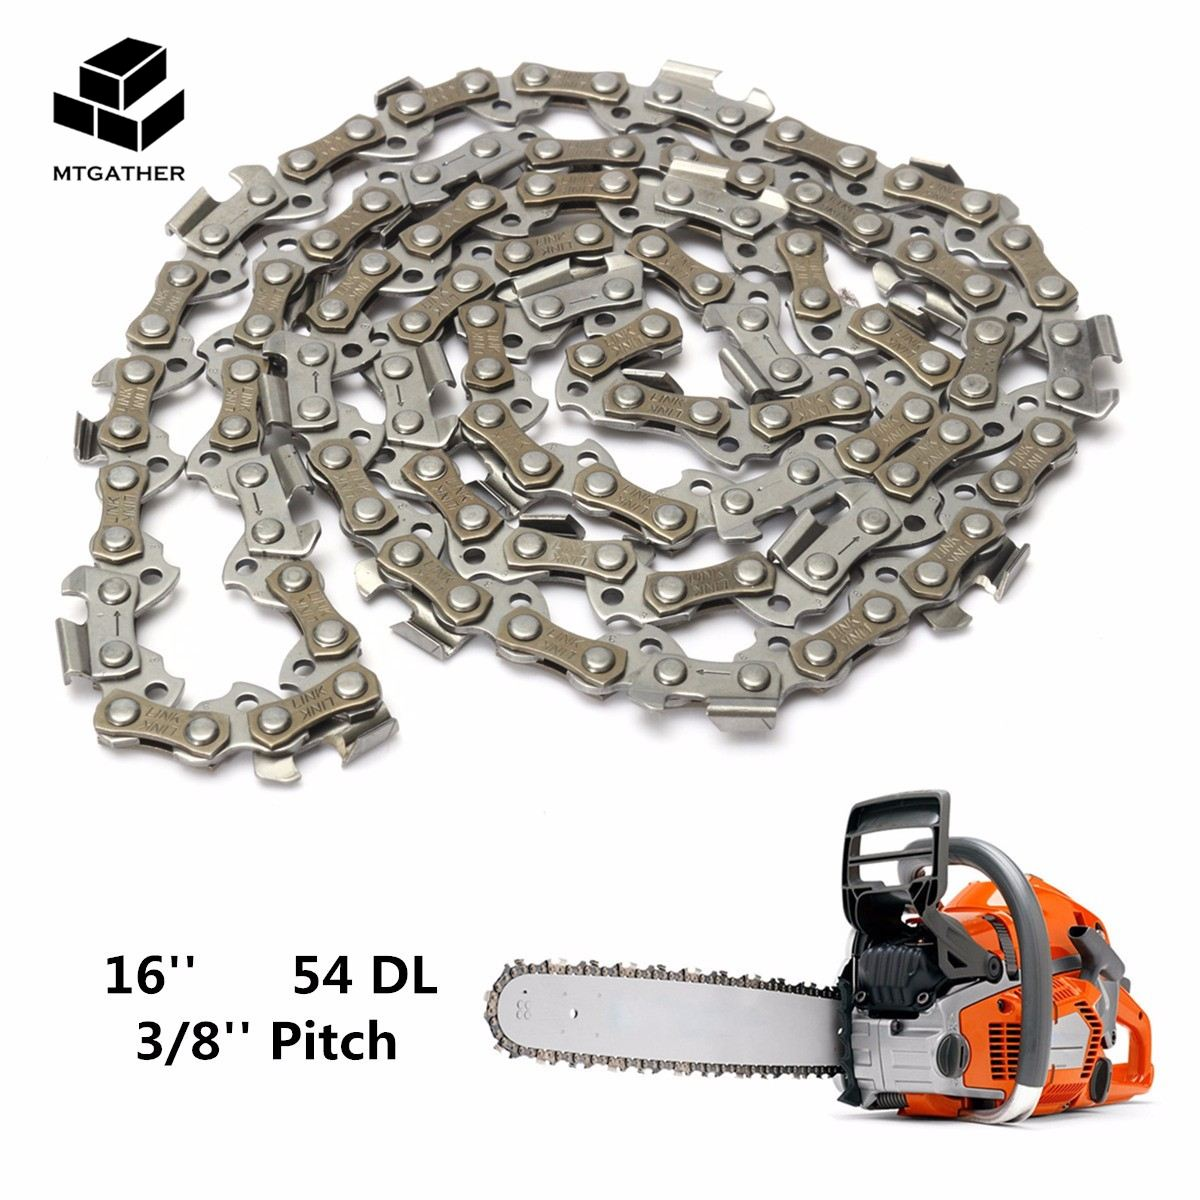 MTGATHER Substitution Chainsaw Saw Mill Chain Blade 16'' 54 Drive Link 3/8'' Pitch 050 Gauge Wood Cutting Chainsaw Parts